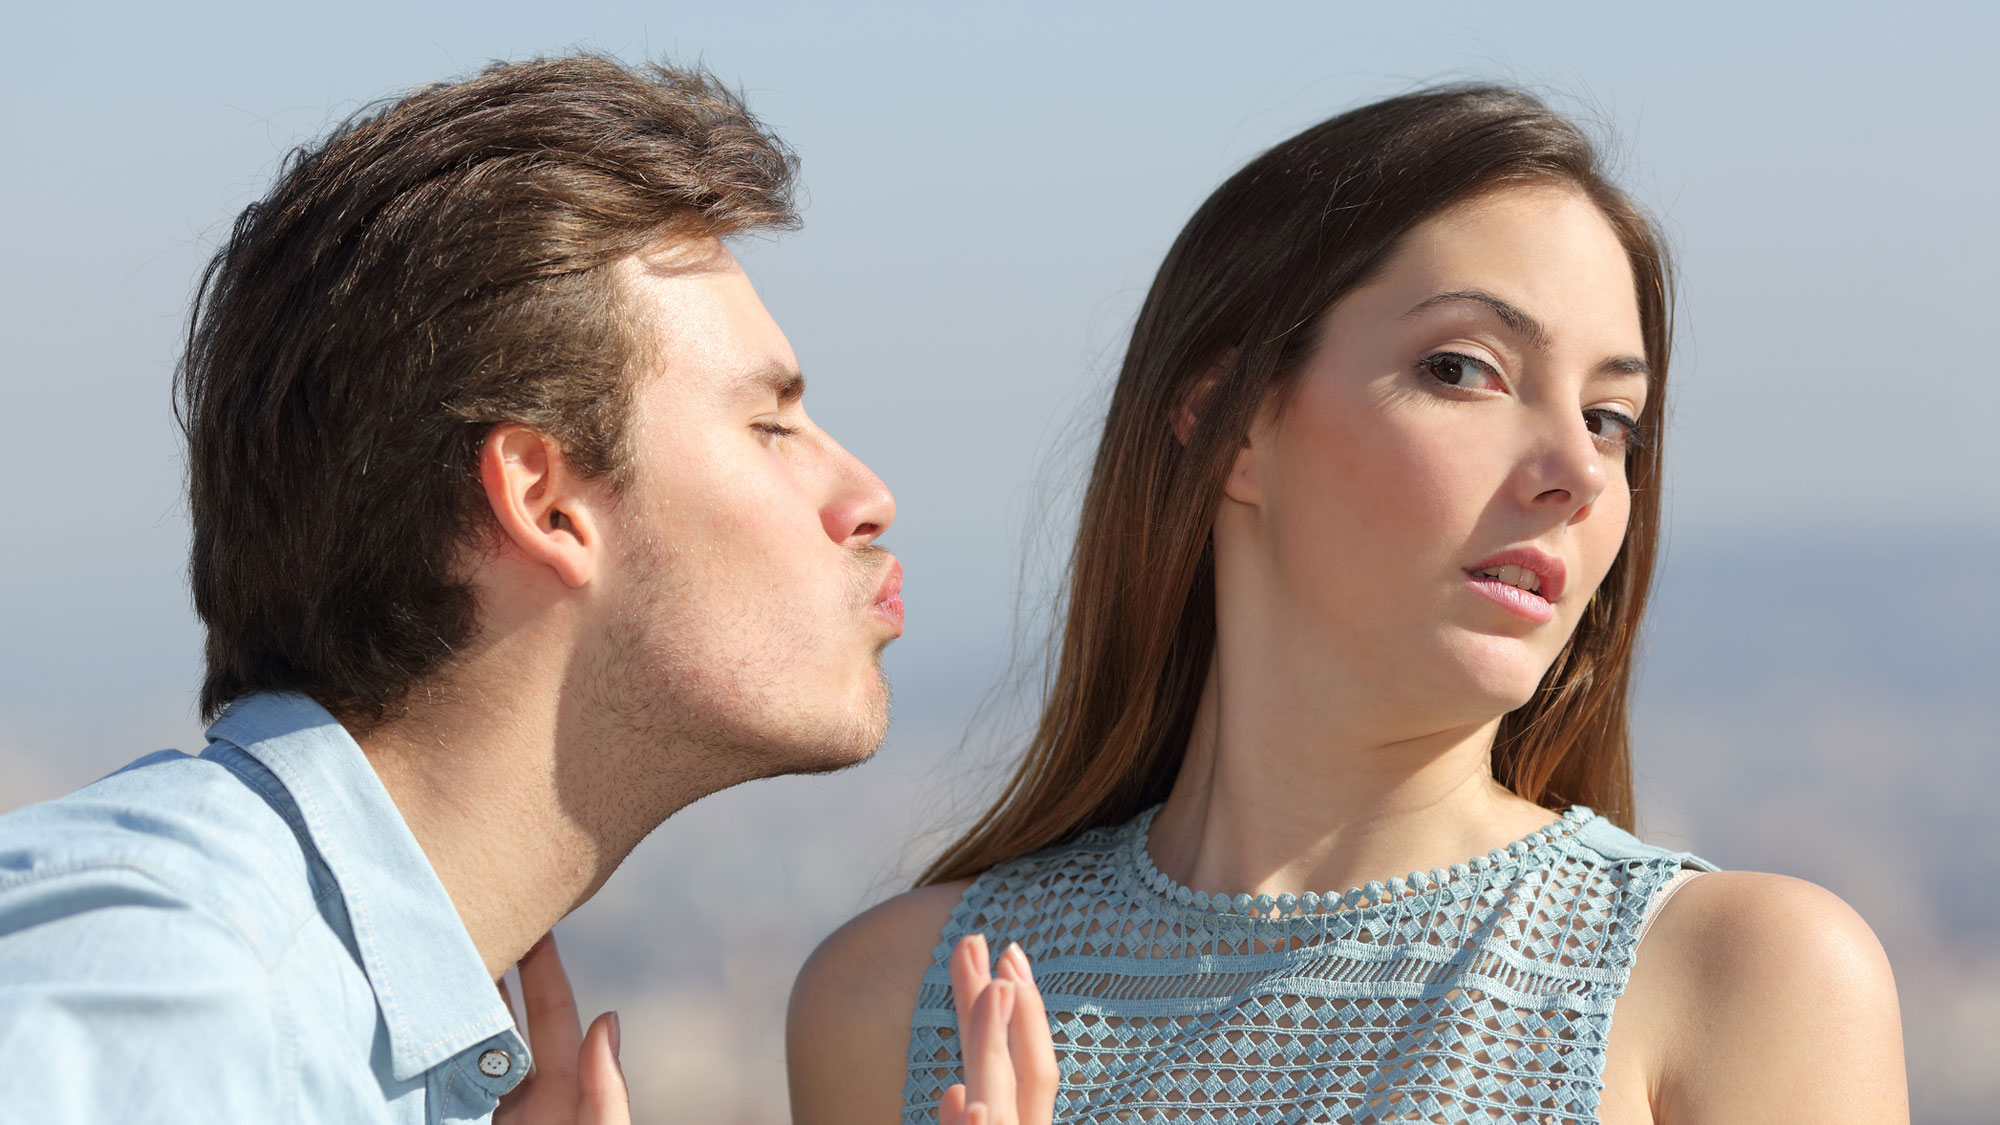 7 Simple Rules to Avoiding Awkward Kisses